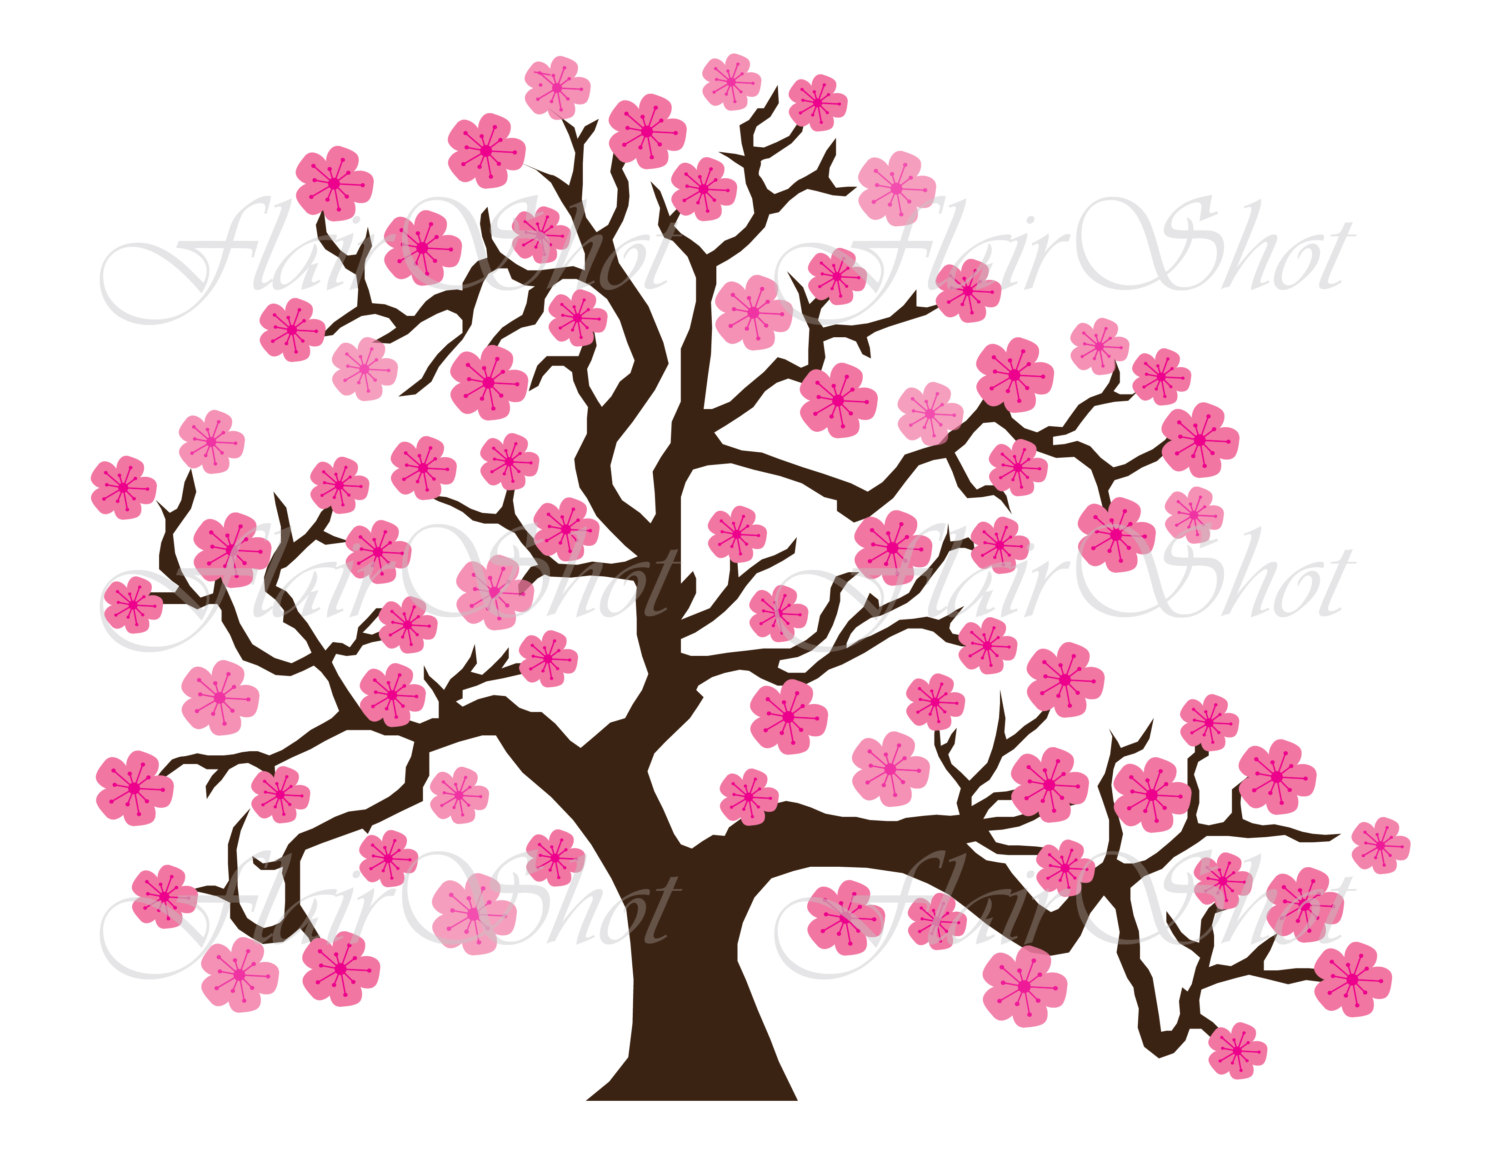 Ume Blossom clipart Download clipart clipart drawings Download